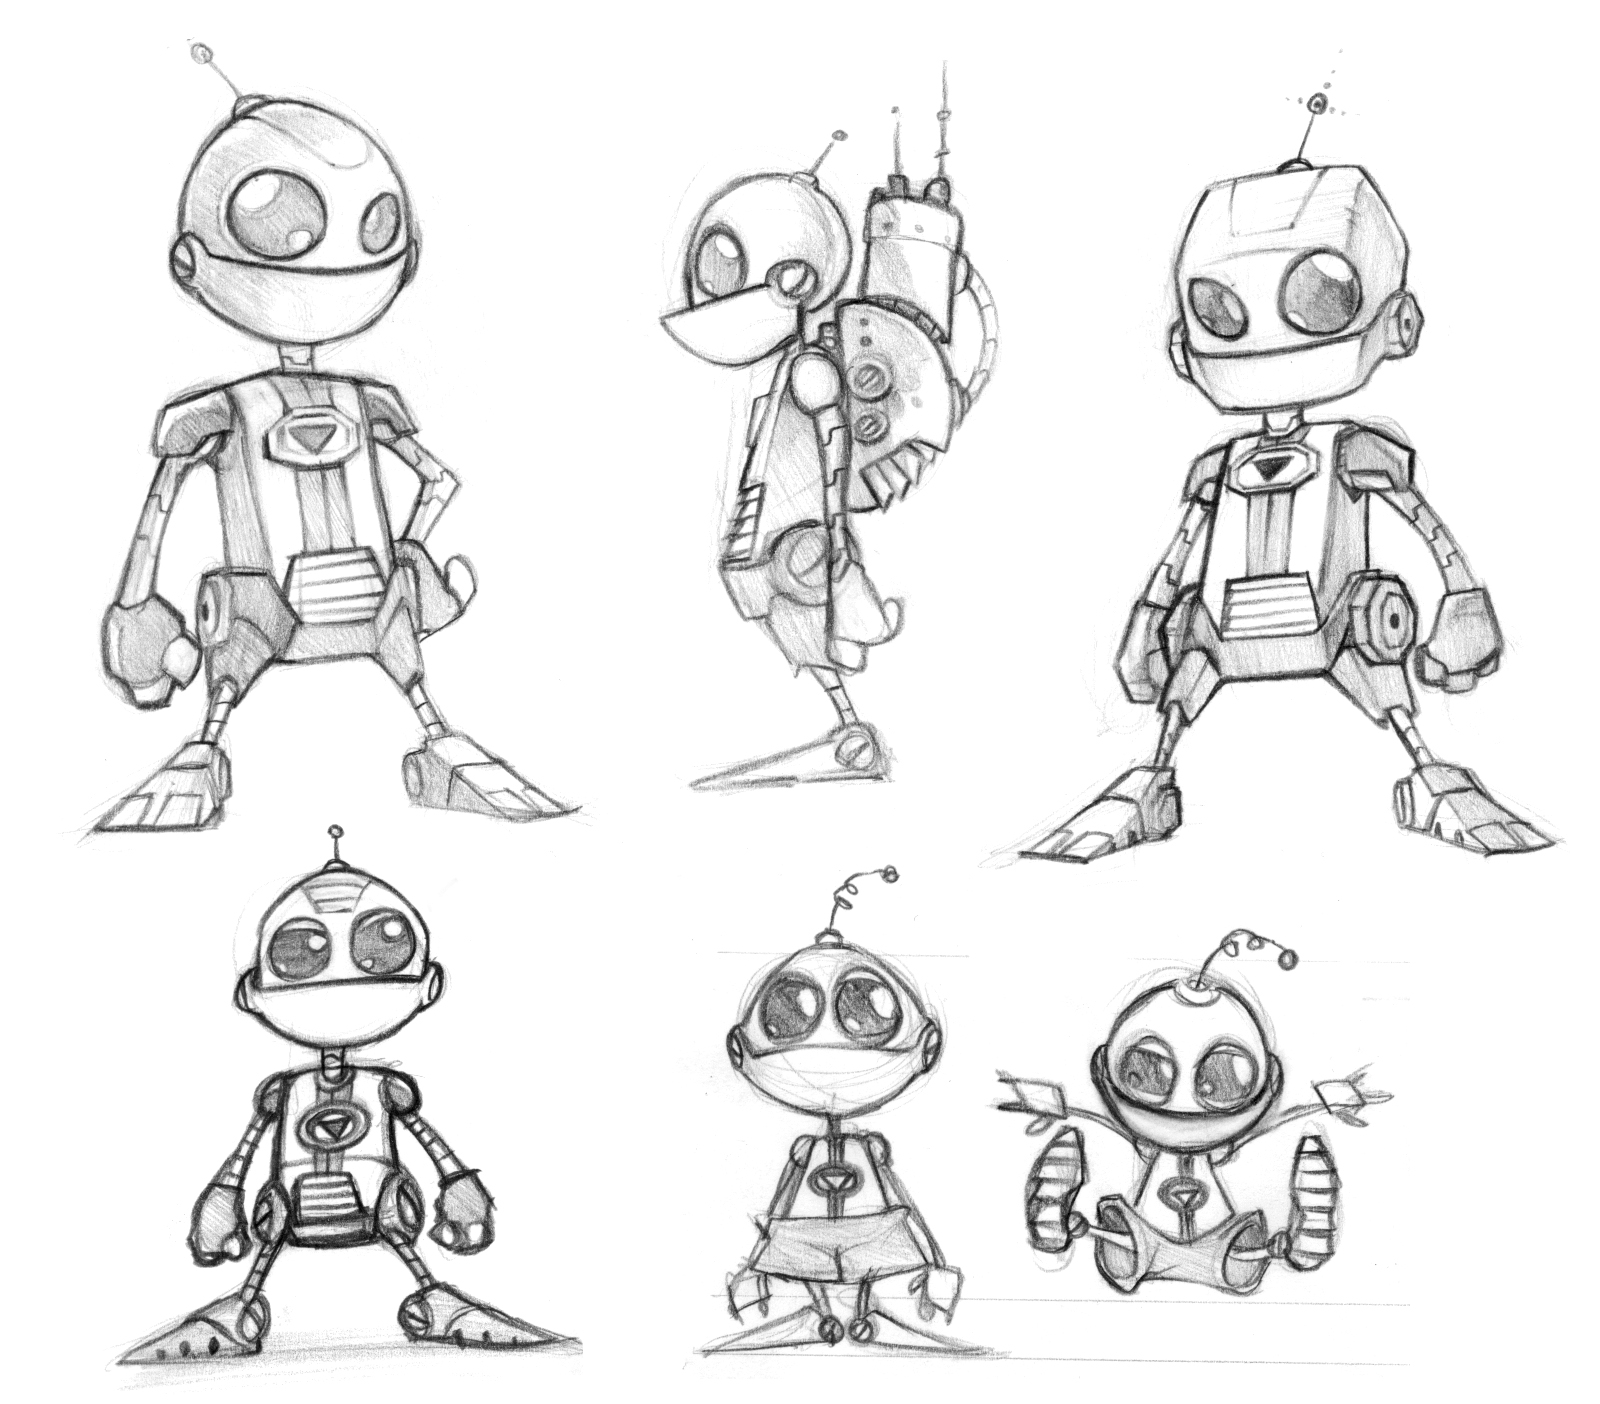 Concept Of Character Design : Ratchet clank years of concept art insomniac games